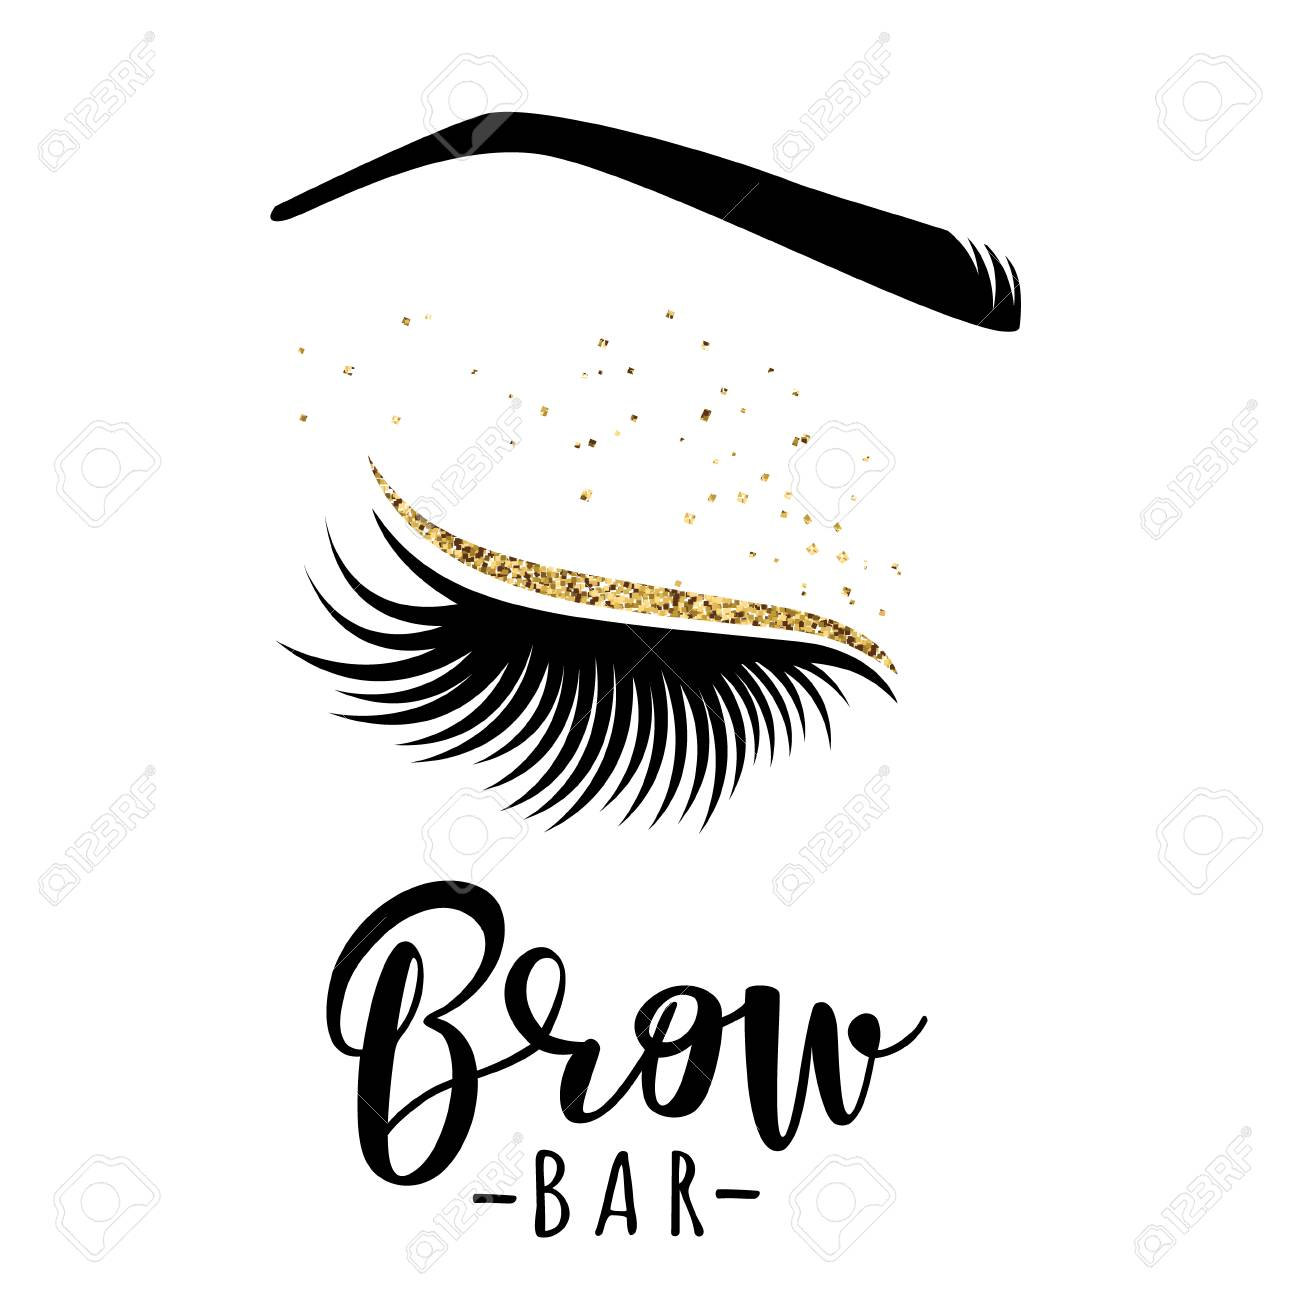 b655d9c0f5b Brow bar logo. Vector illustration of lashes and brow. For beauty salon,  lash